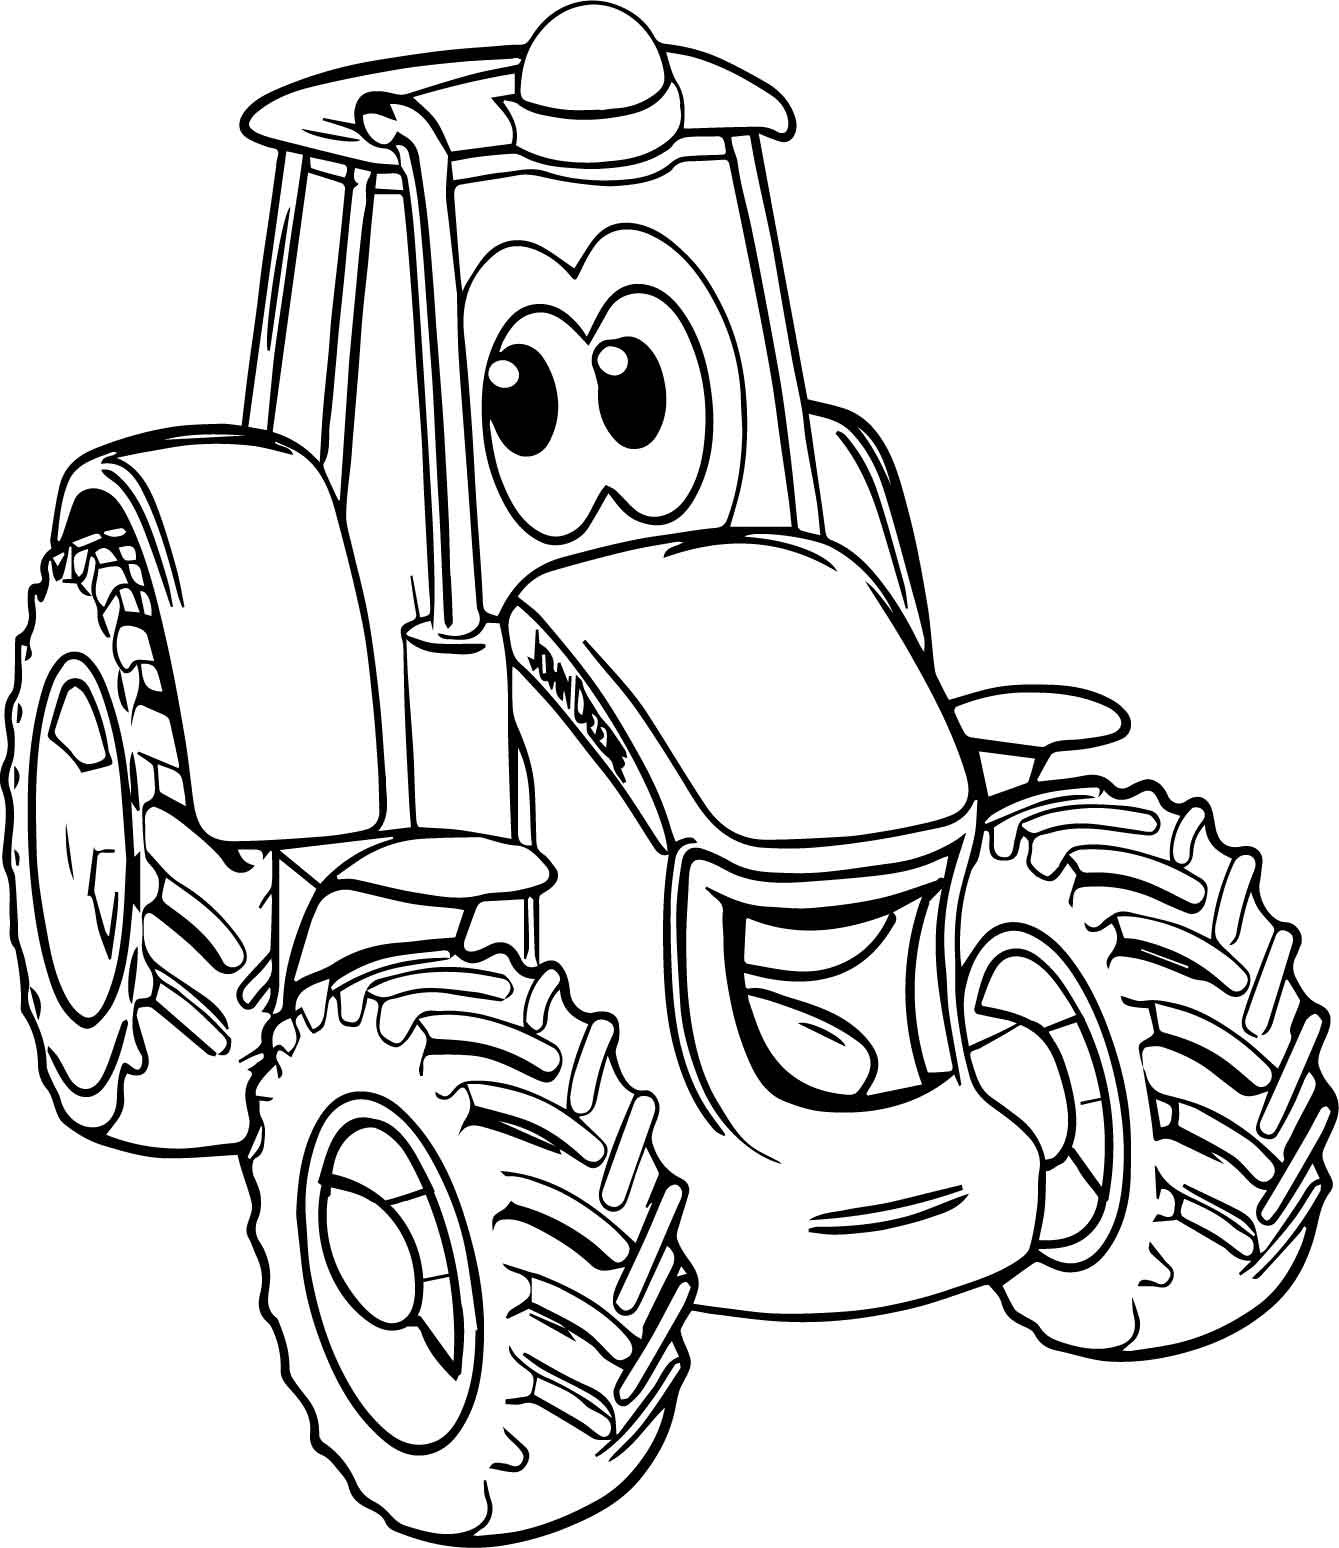 john deere tractors coloring pages printable john deere coloring pages for kids cool2bkids john tractors coloring pages deere